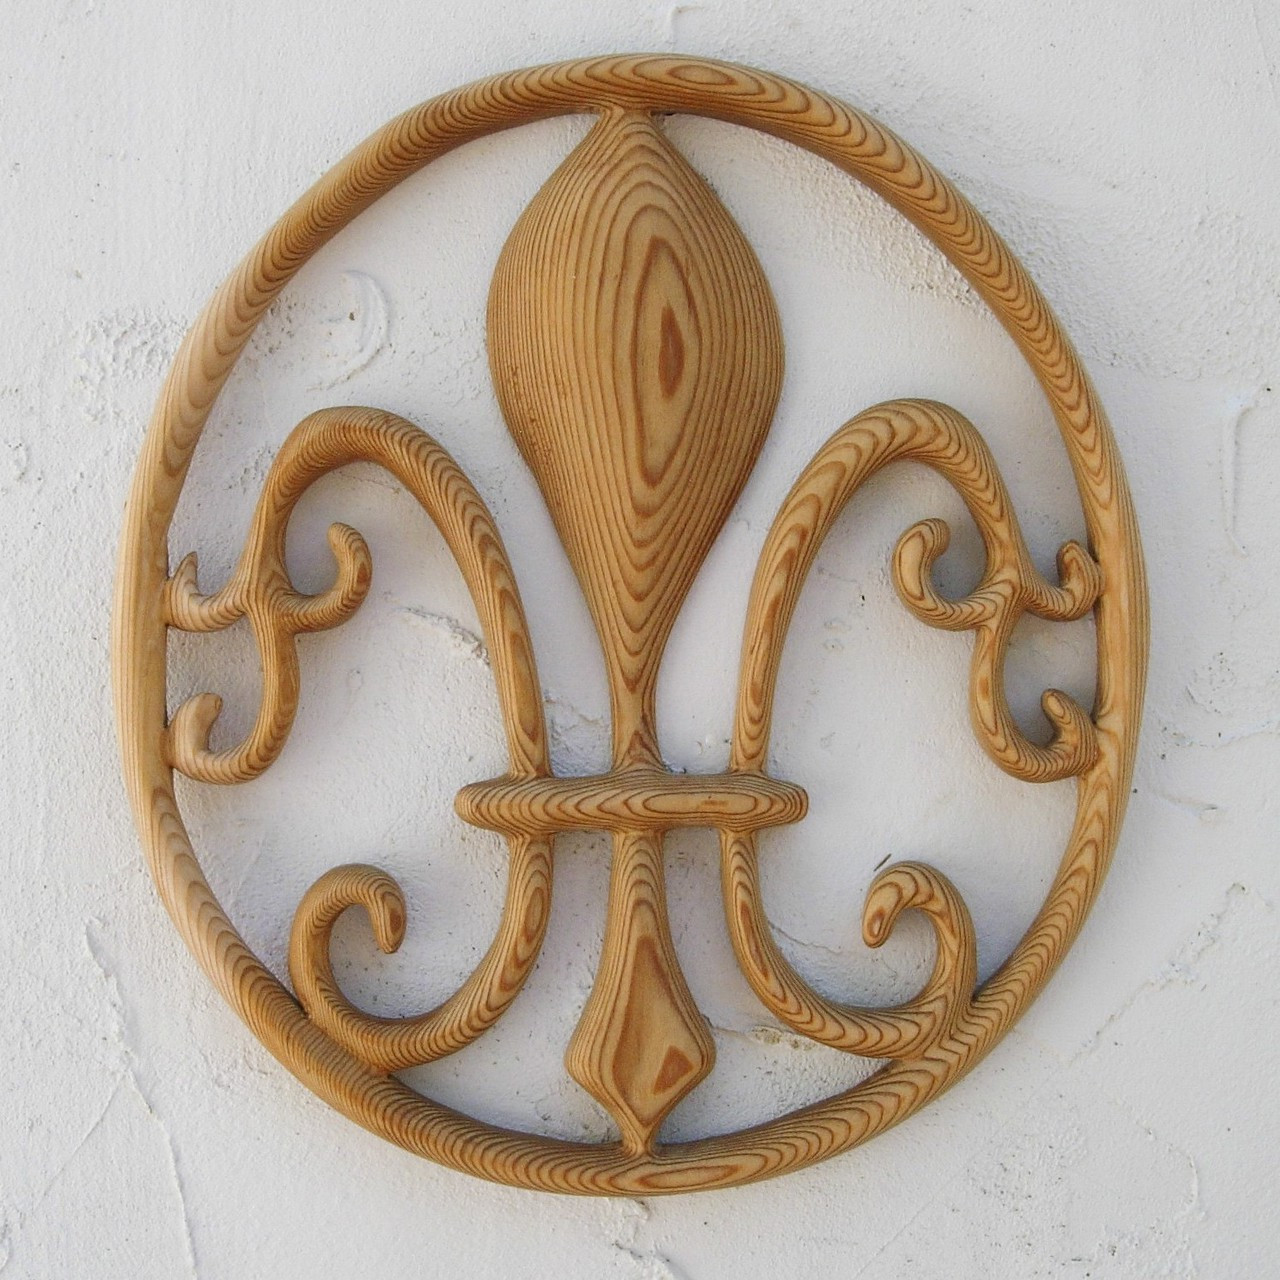 Fleur De Lis Symbol Of Kings Greek Goddess Hera Virgin Mary And New Orleans Saints